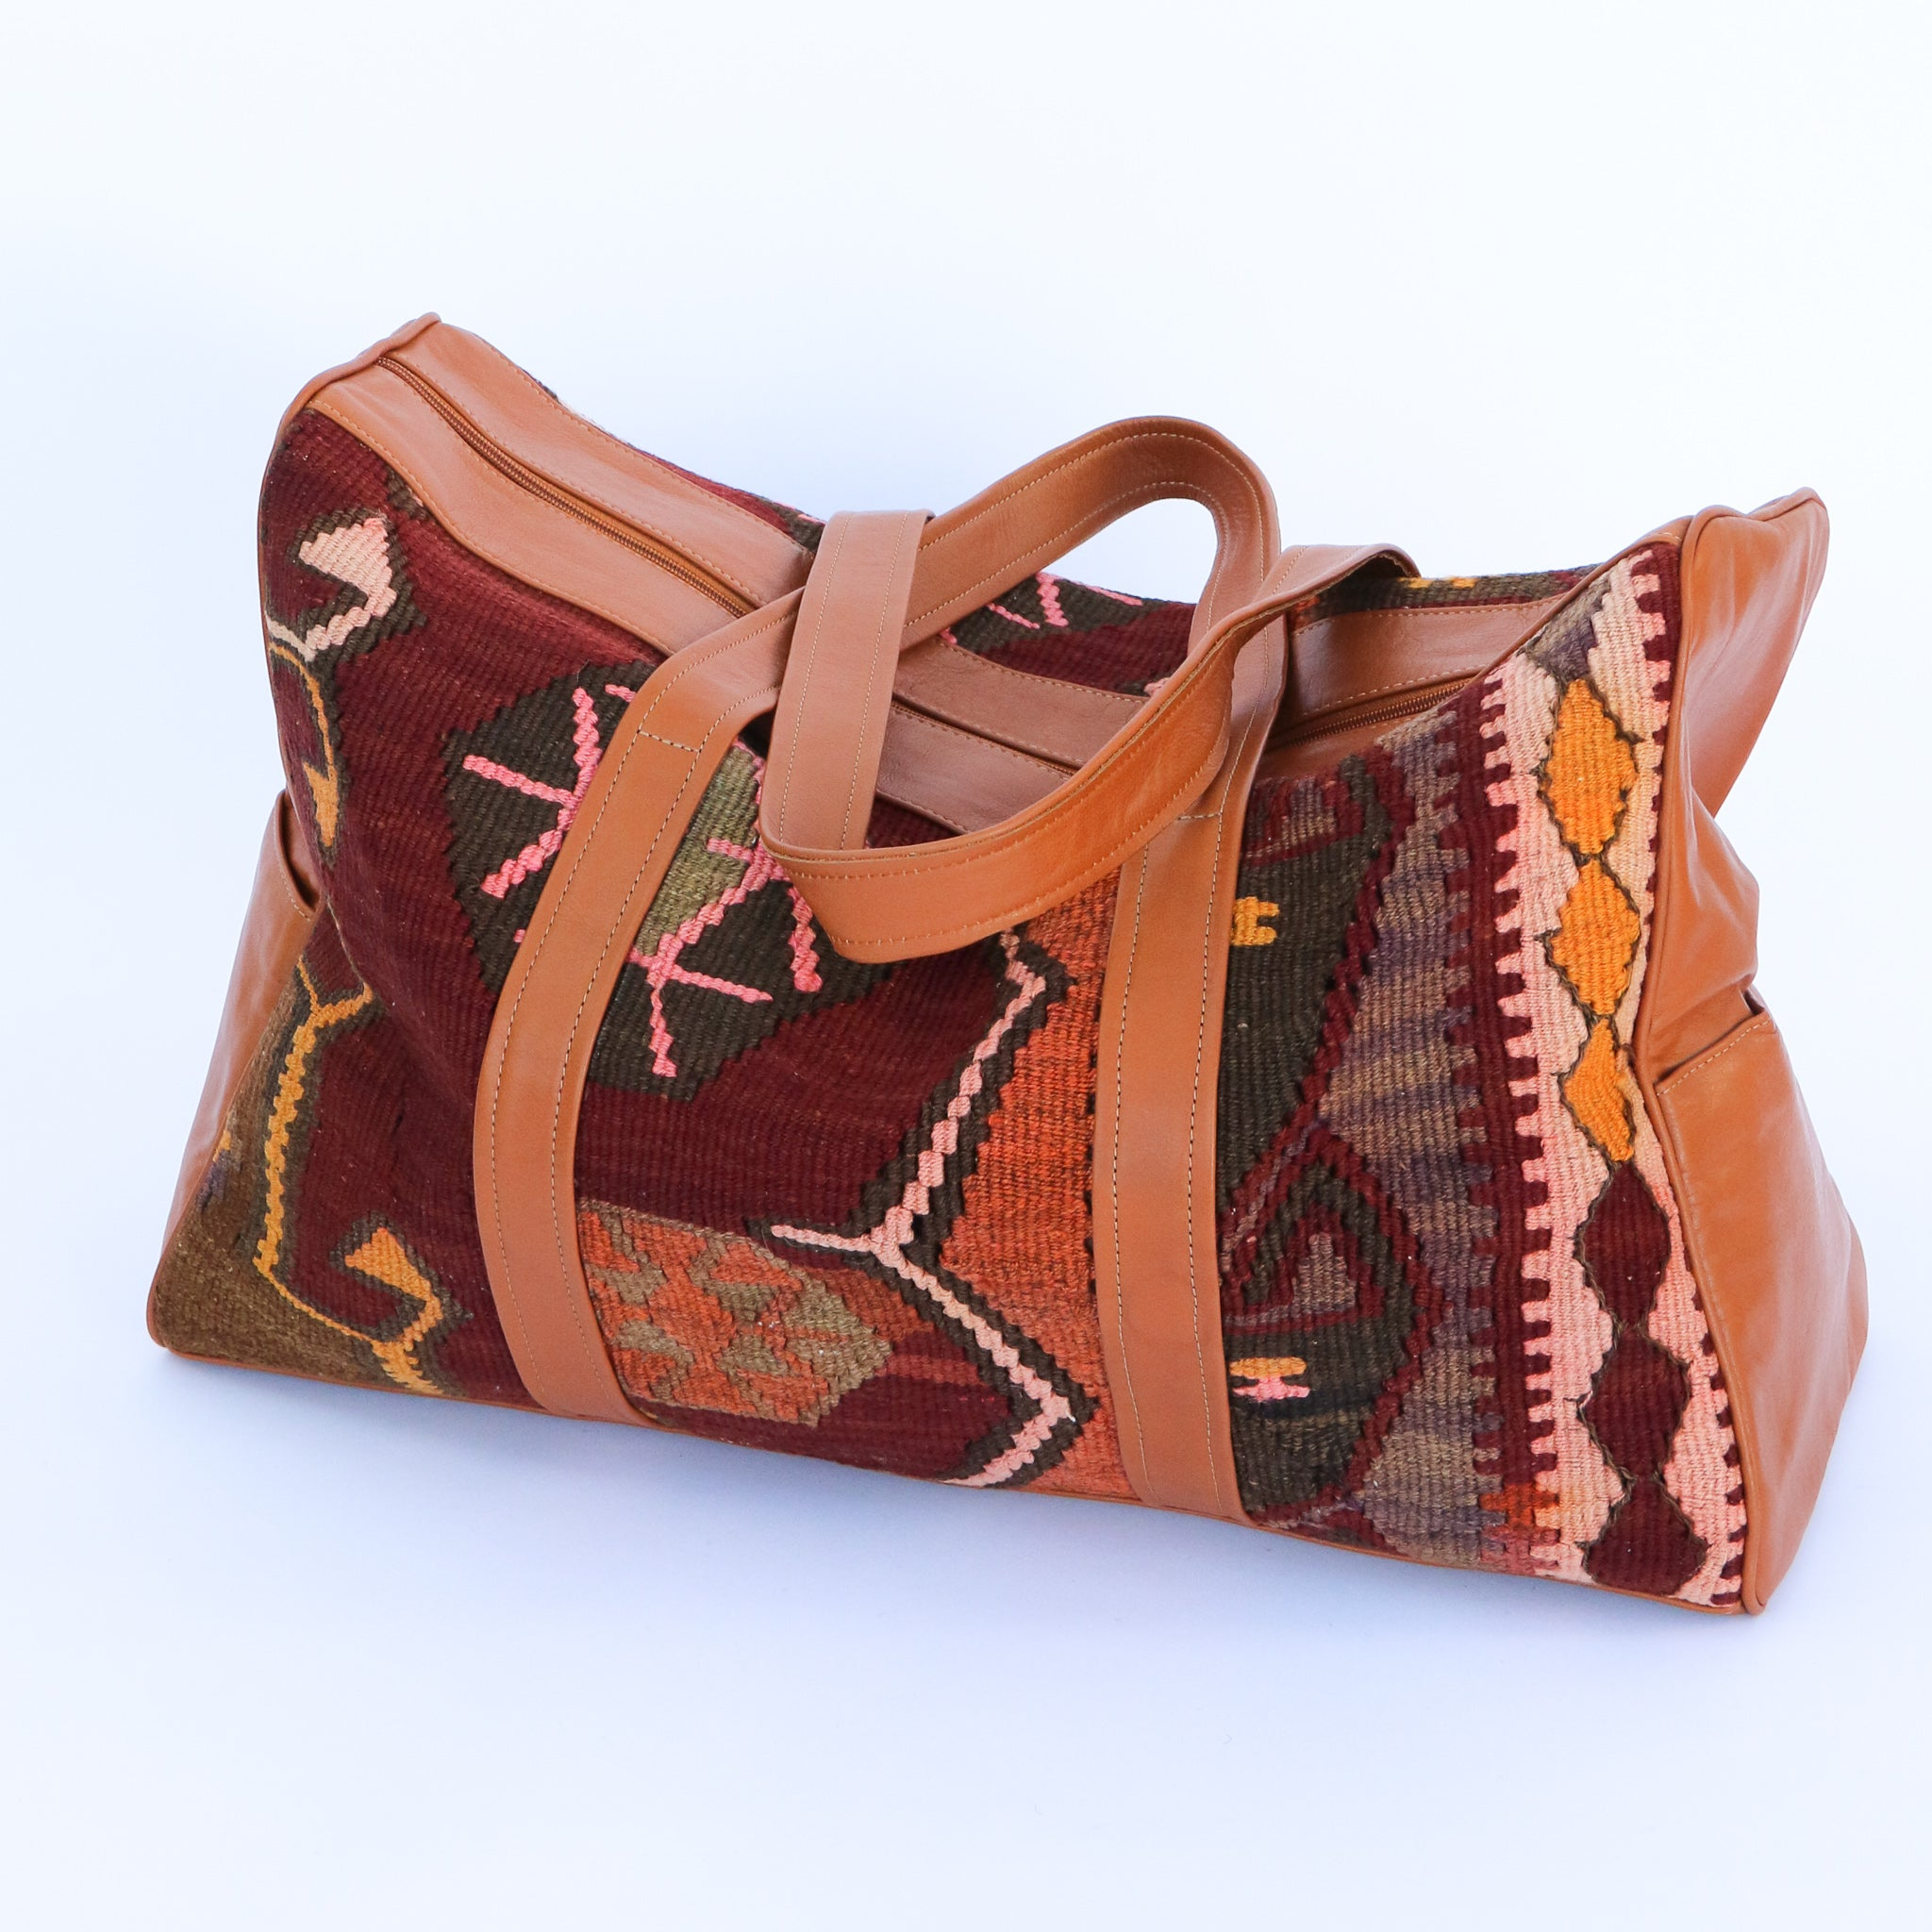 Kilim & Leather Overnight Bag #25 (w/ side pockets)